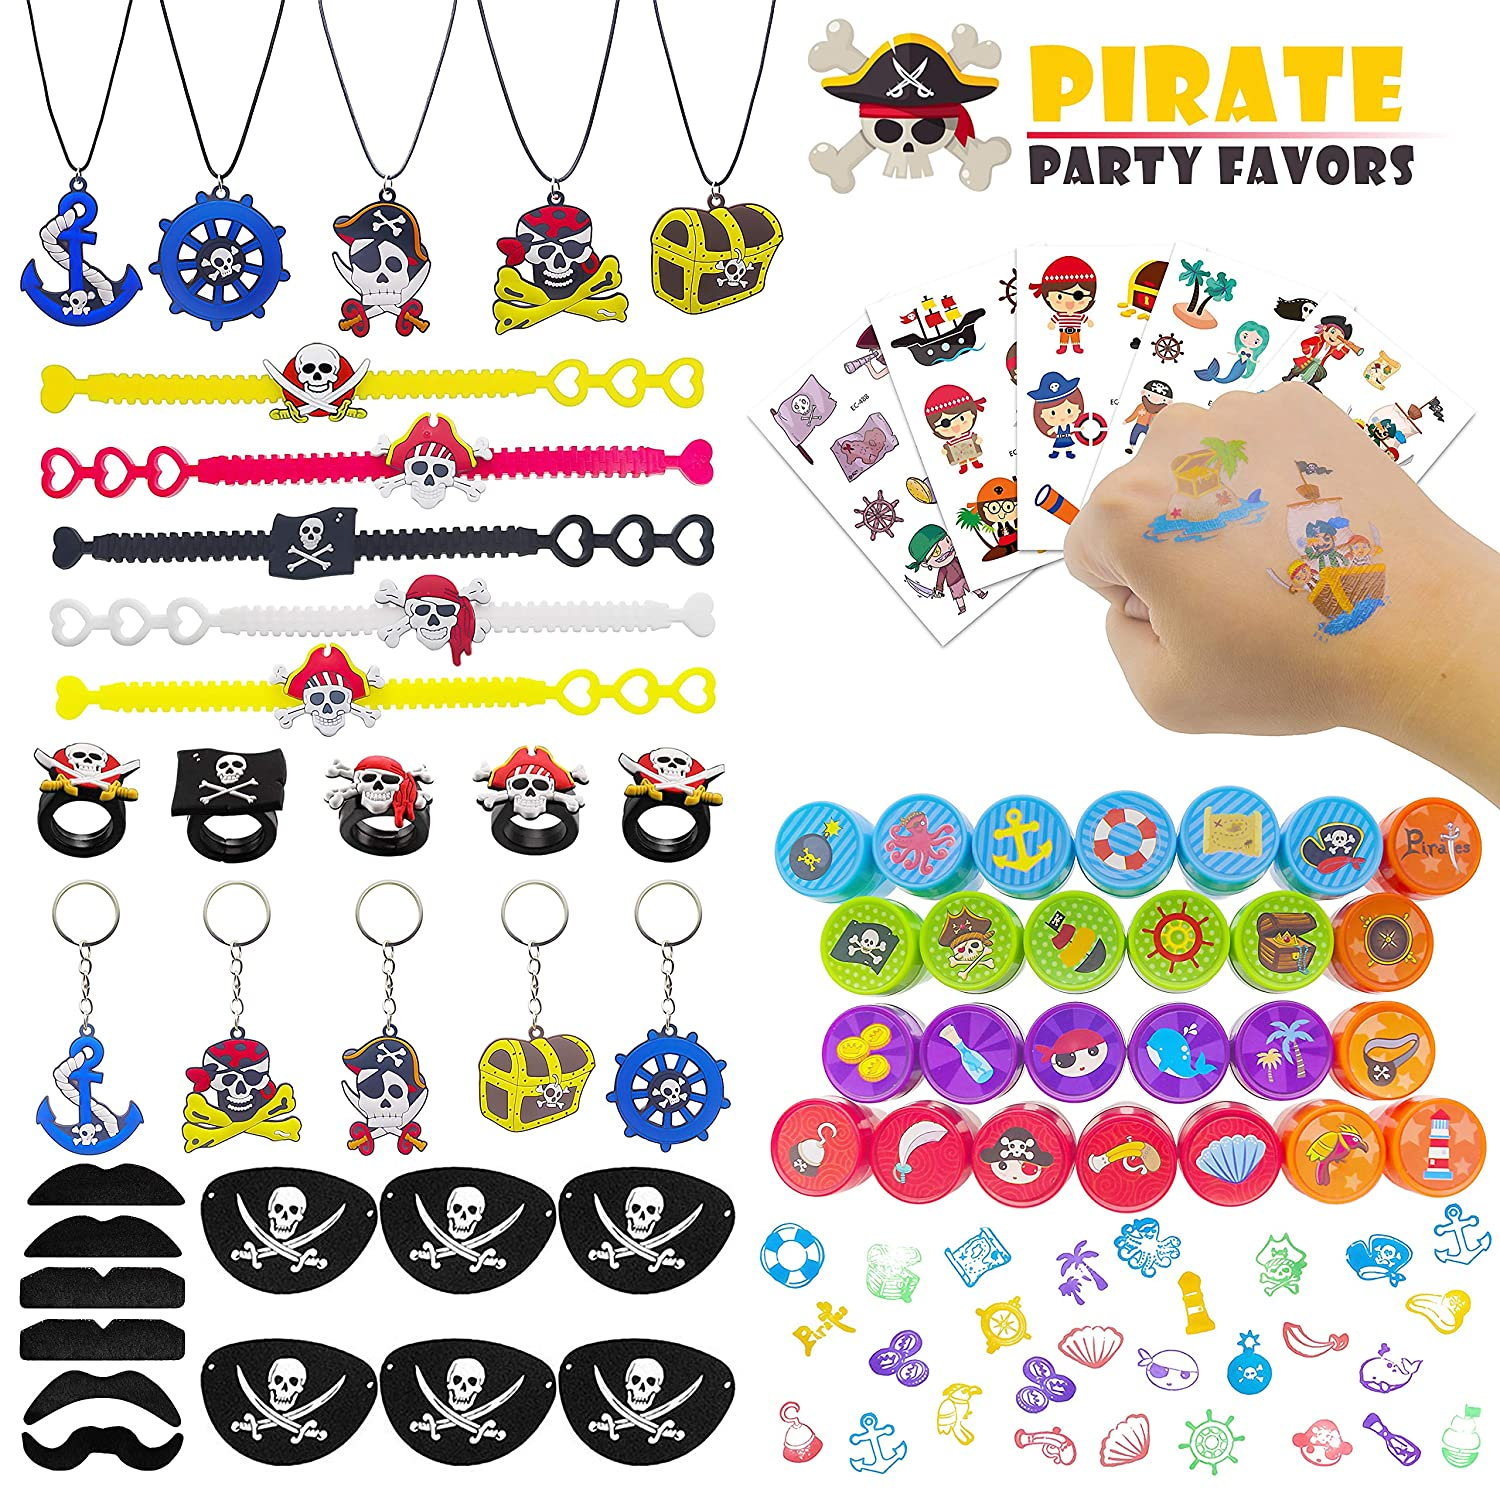 Bracelets,Necklace,Pirate Party Goodie Bag Fillers,Prizes Gift Carnivals For Kids Birthday Pirate Party Supplies Kit,Pirate Temporary Tattoos,Stamper,Rings